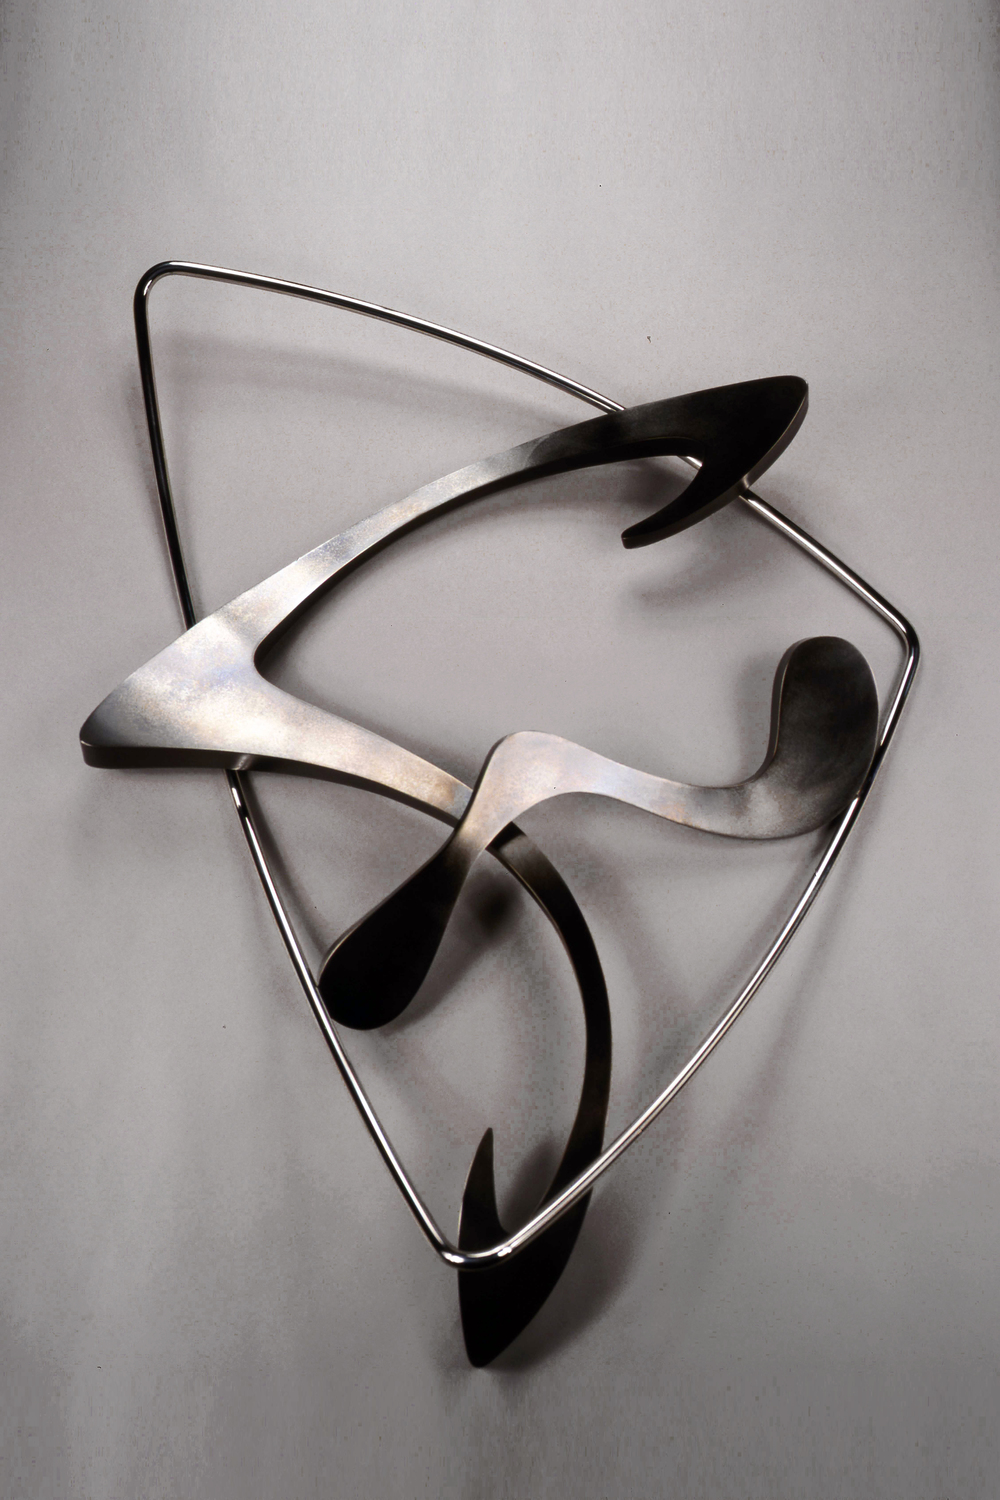 Entropy Series #53, bronze & stainless steel